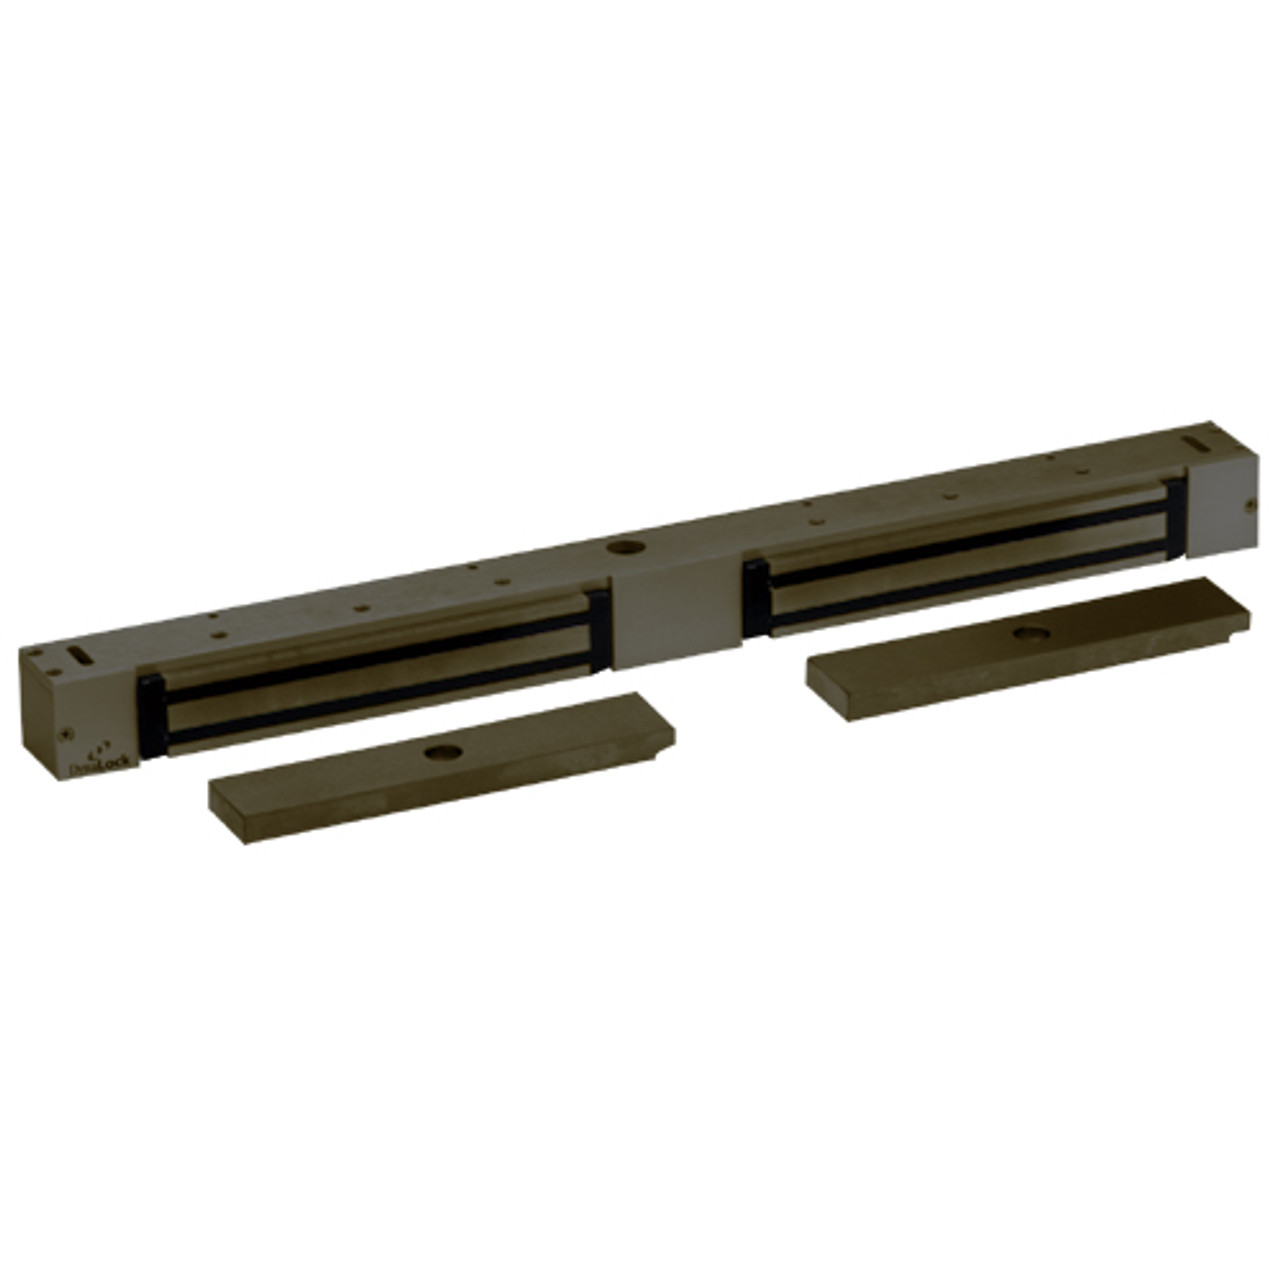 2268-20-US10B DynaLock 2268 Series Double Classic Low Profile Electromagnetic Lock for Outswing Door in Oil Rubbed Bronze